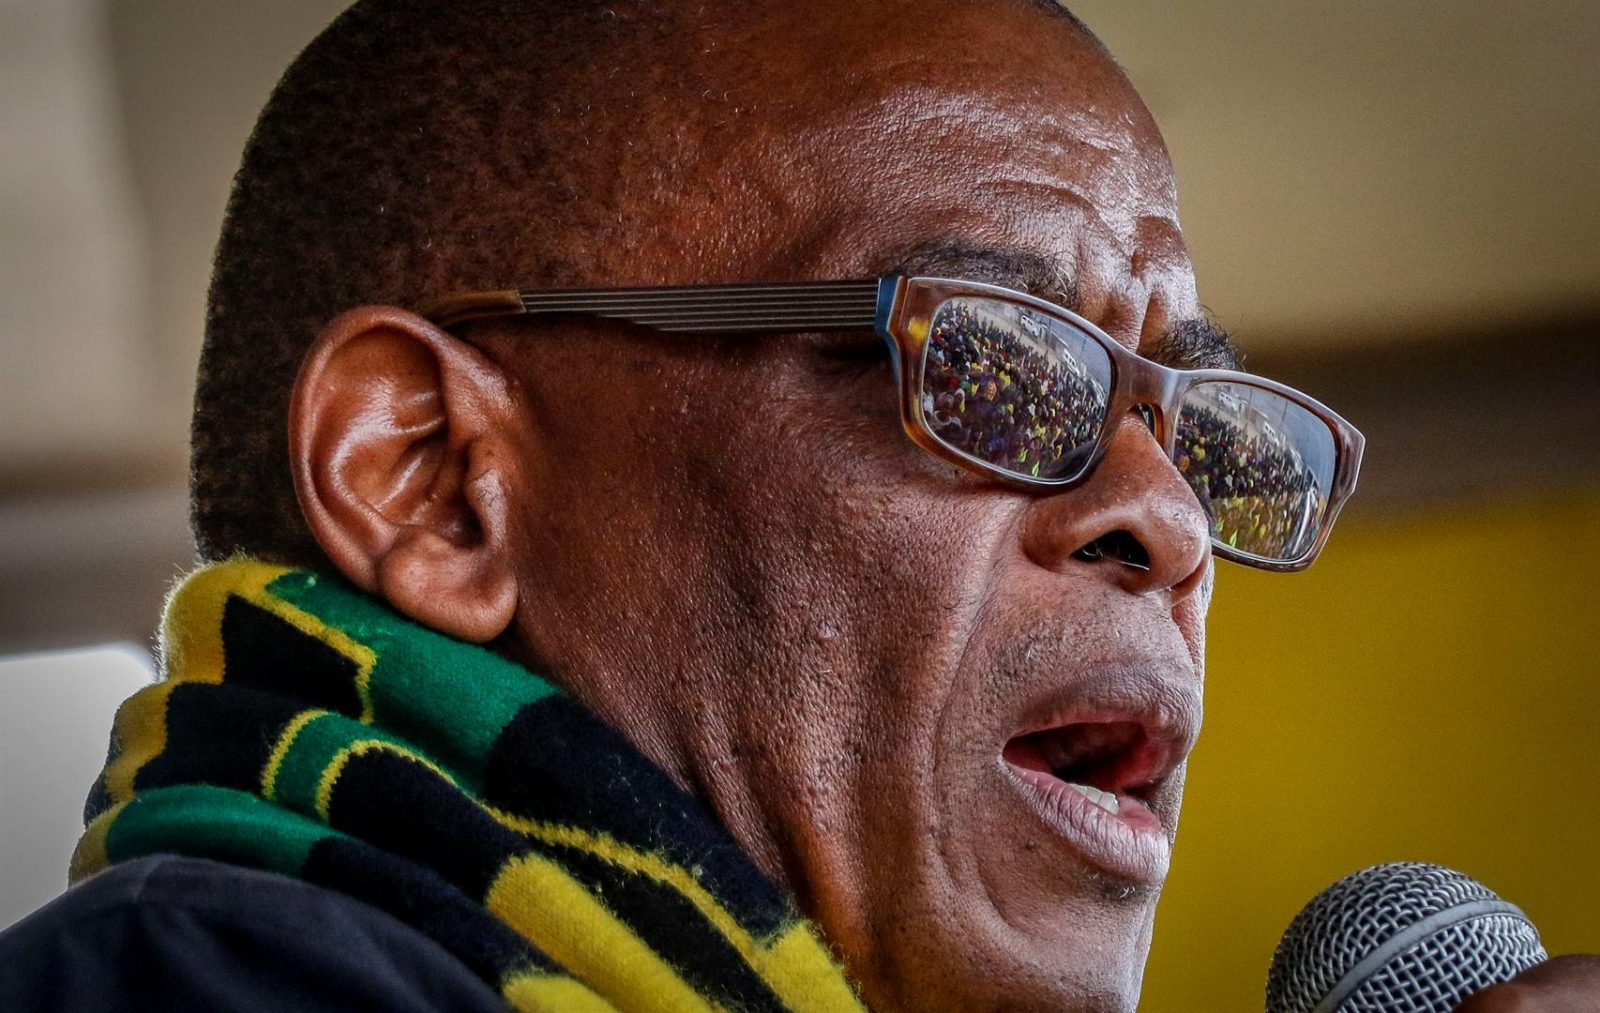 Latest News in Africa: New evidence 'implicates Zwane, Magashule' in Gupta/Free State deals